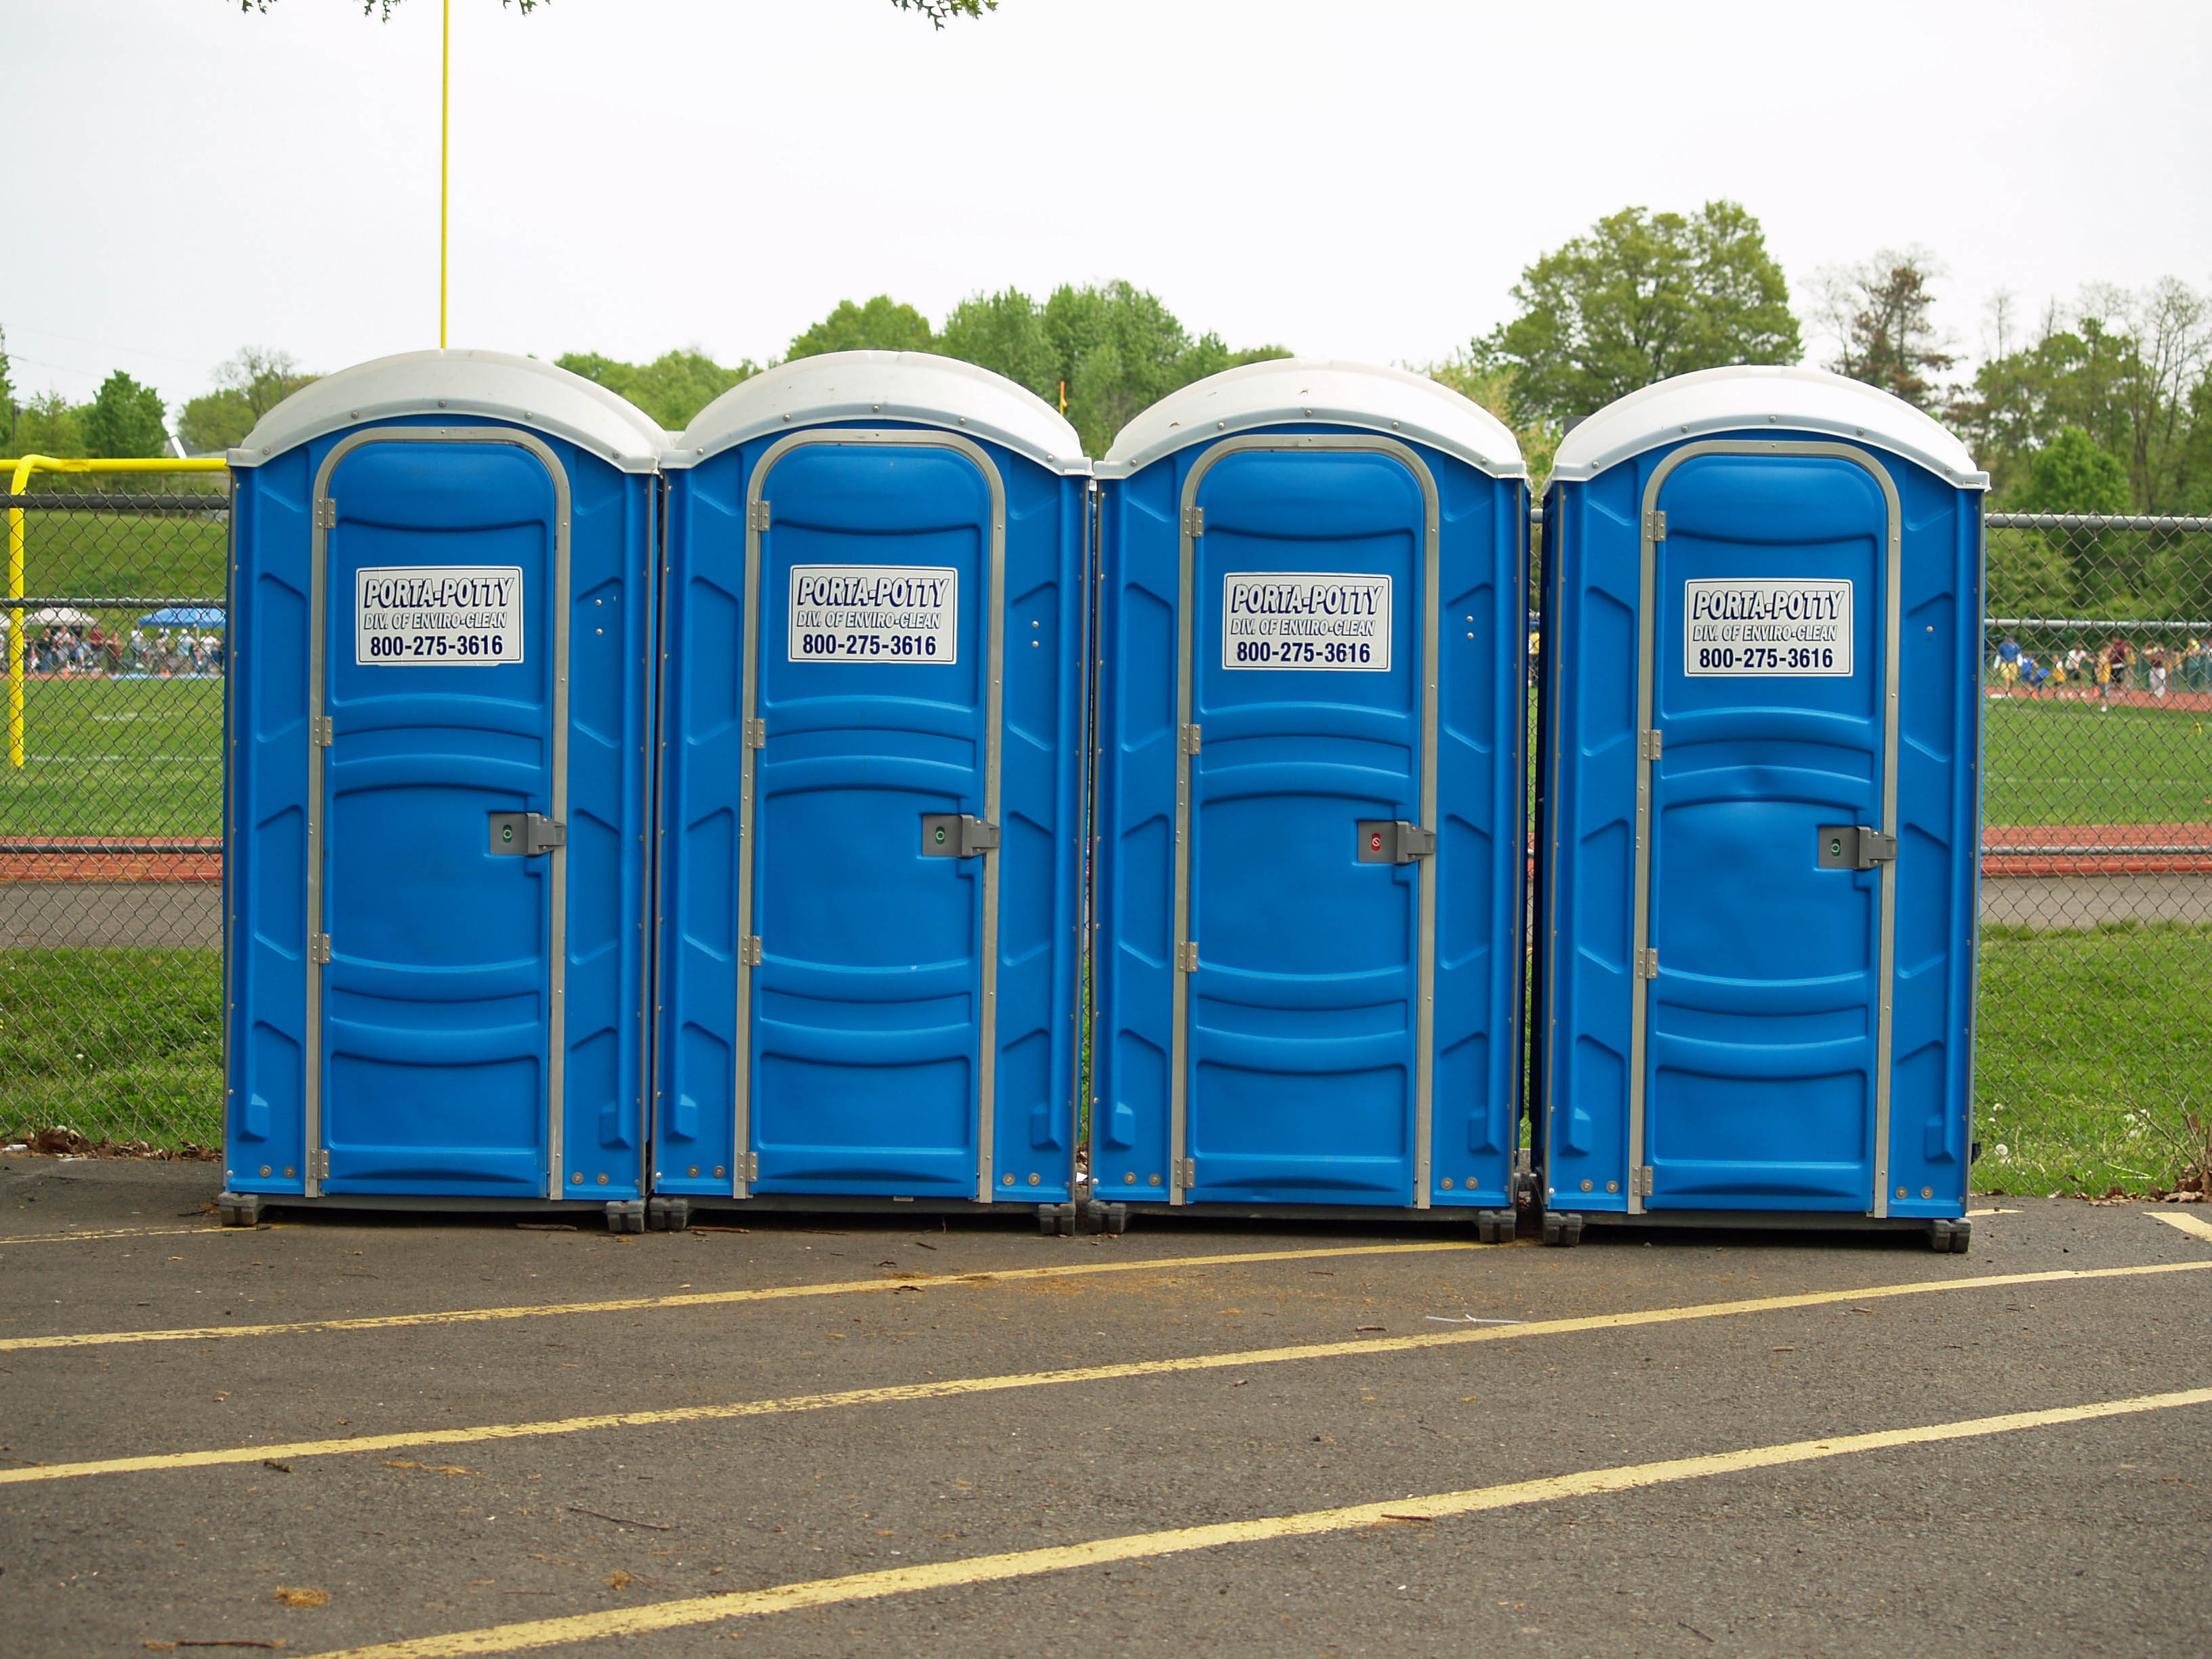 ... David Nassau Ironman Triathlete Port O Potty